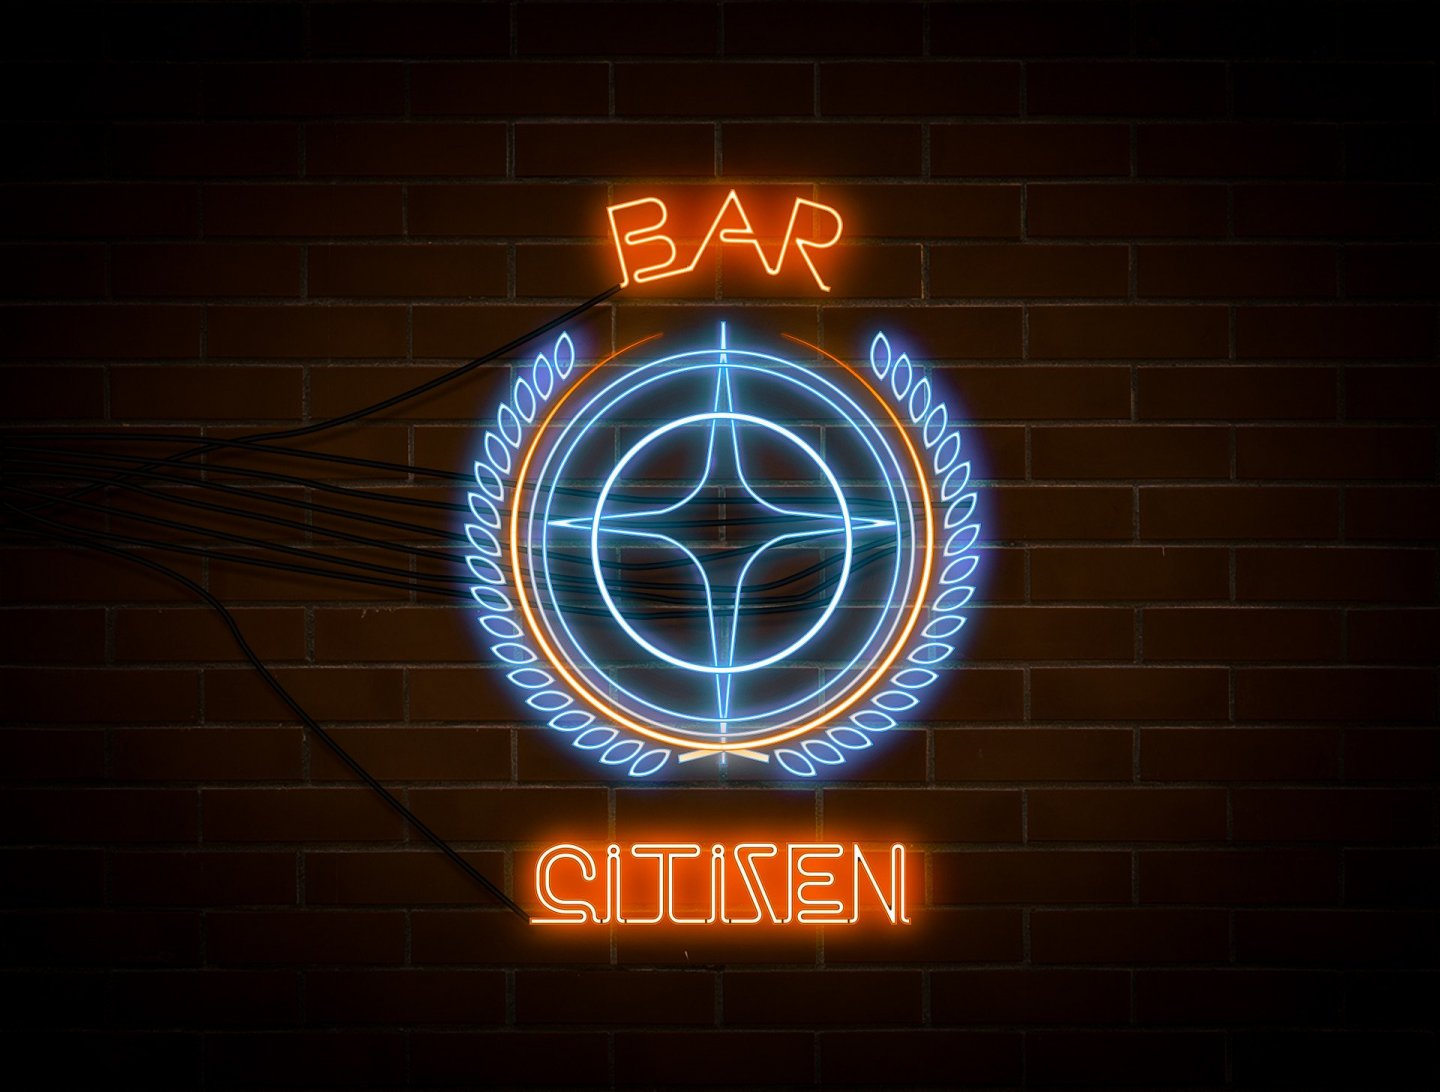 Star Citizen - Mining, Bar Citizen Logo